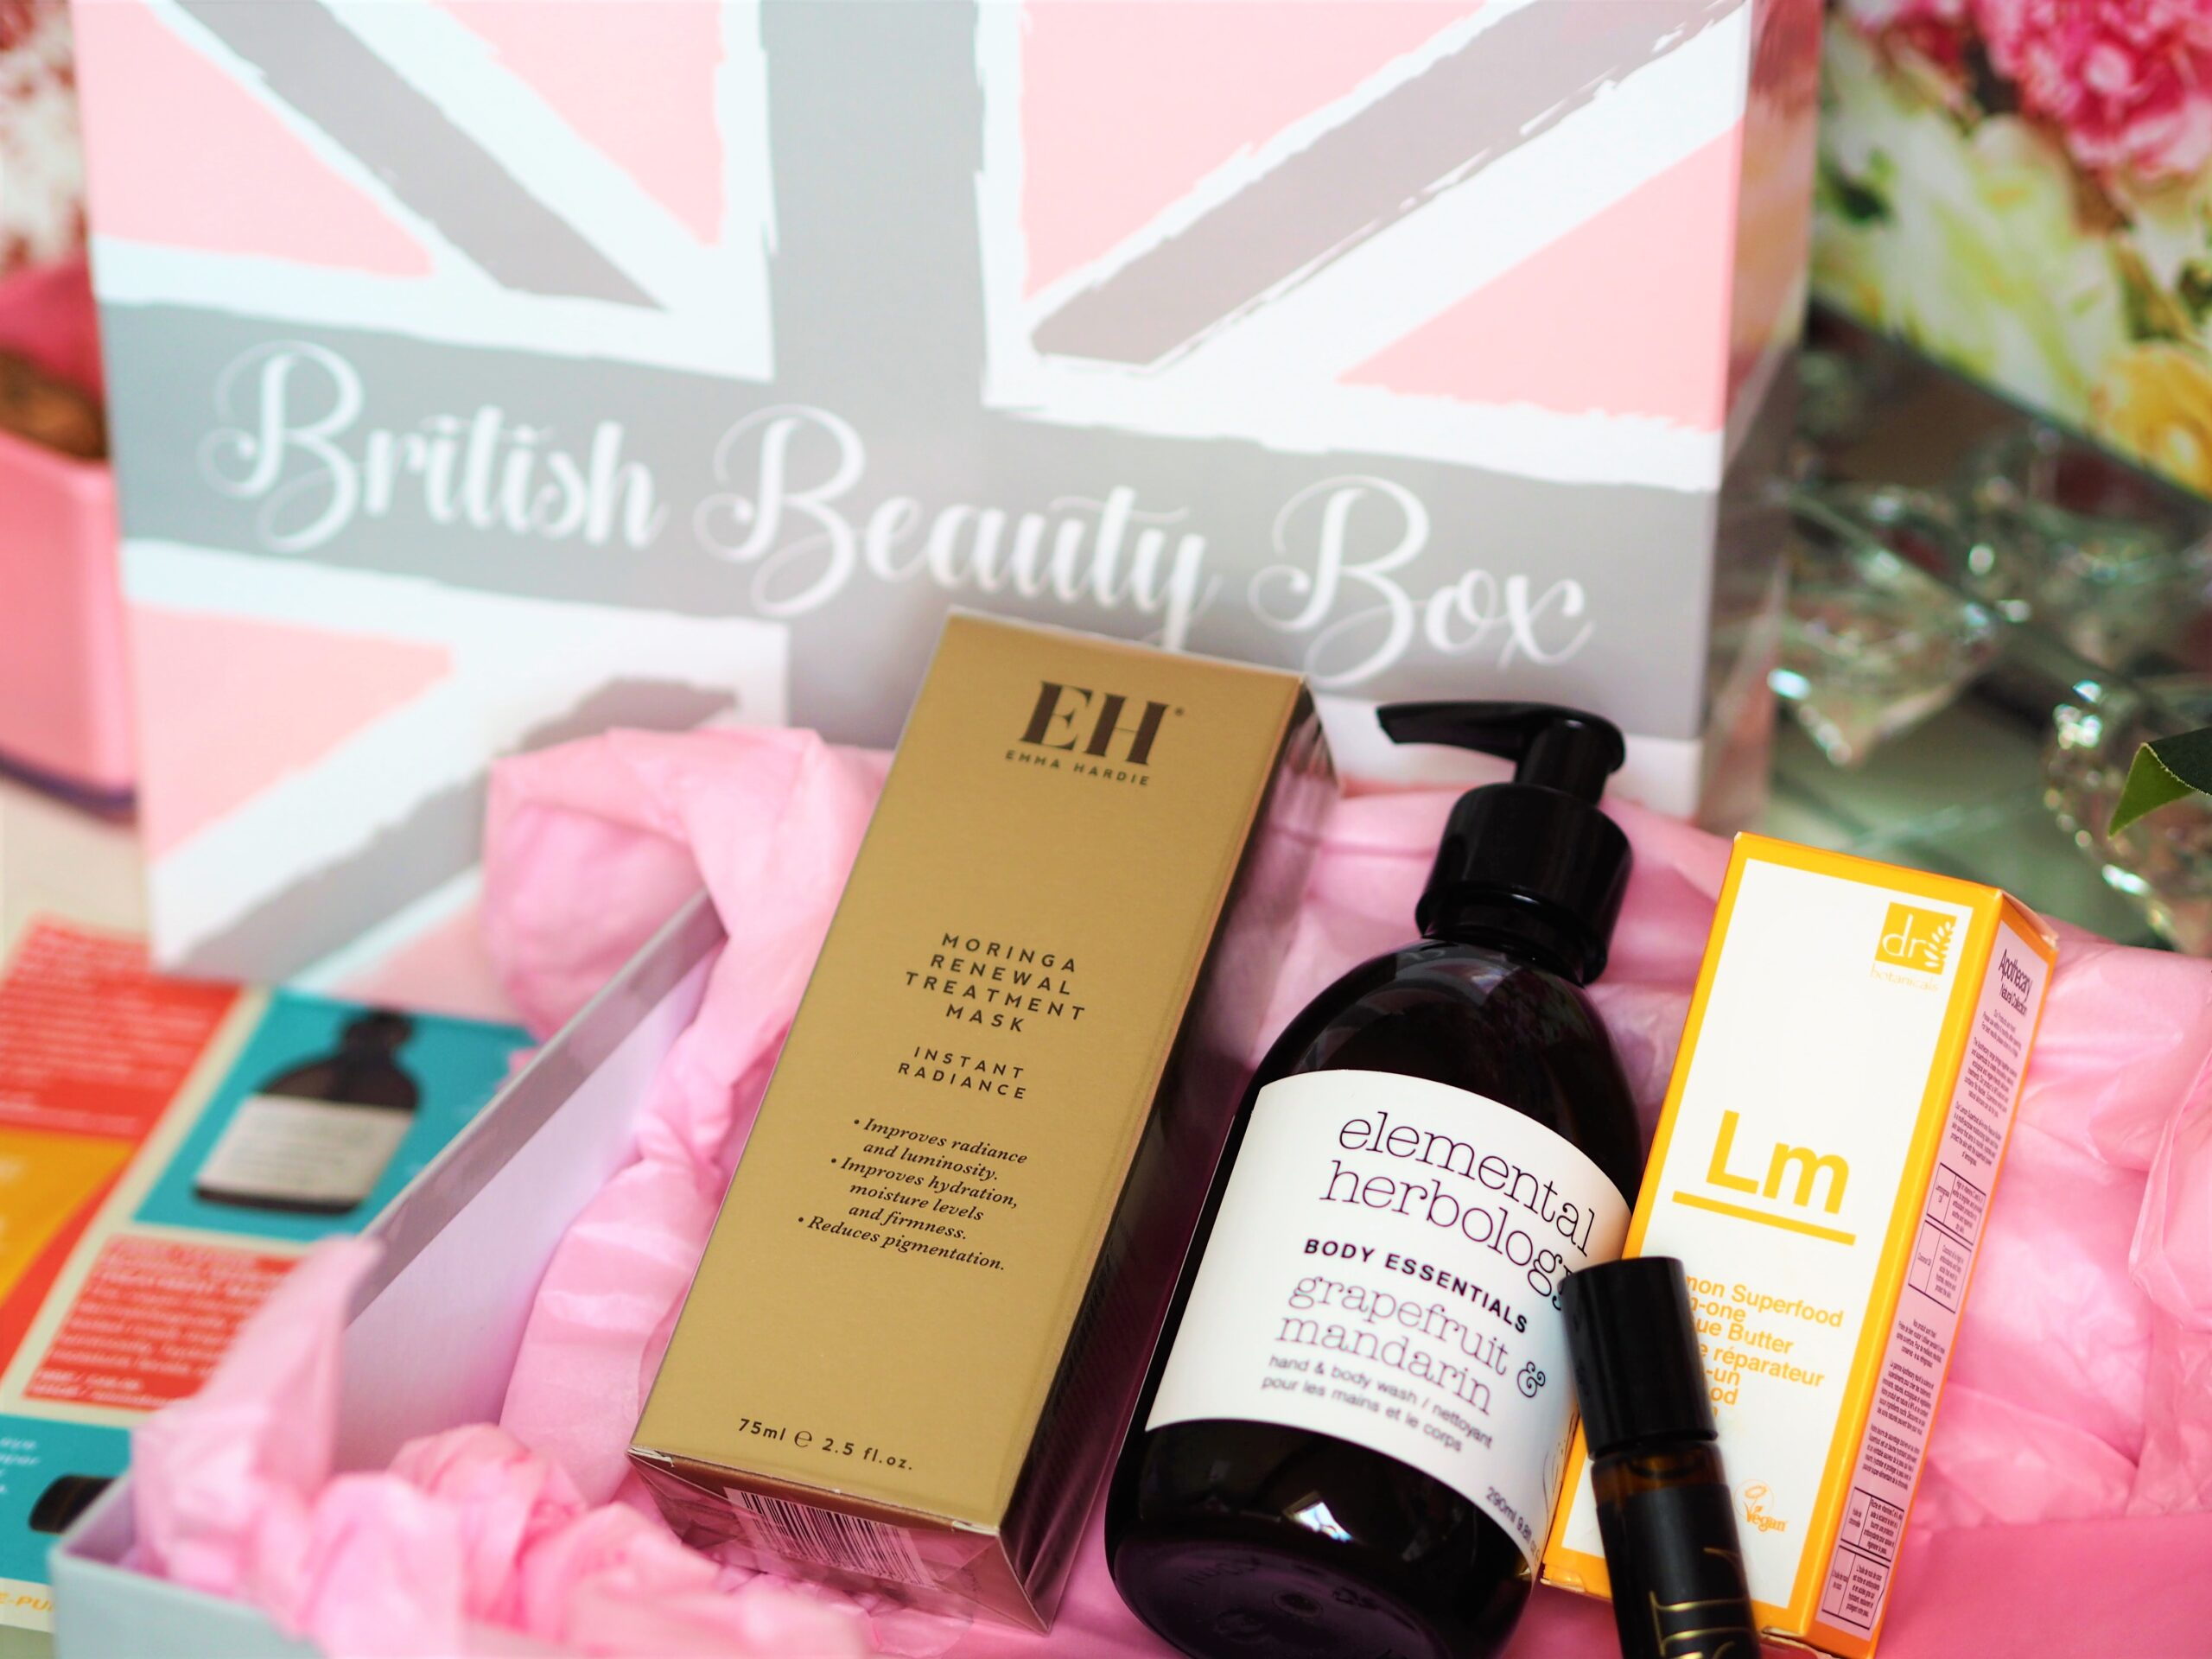 Summer British Beauty Box